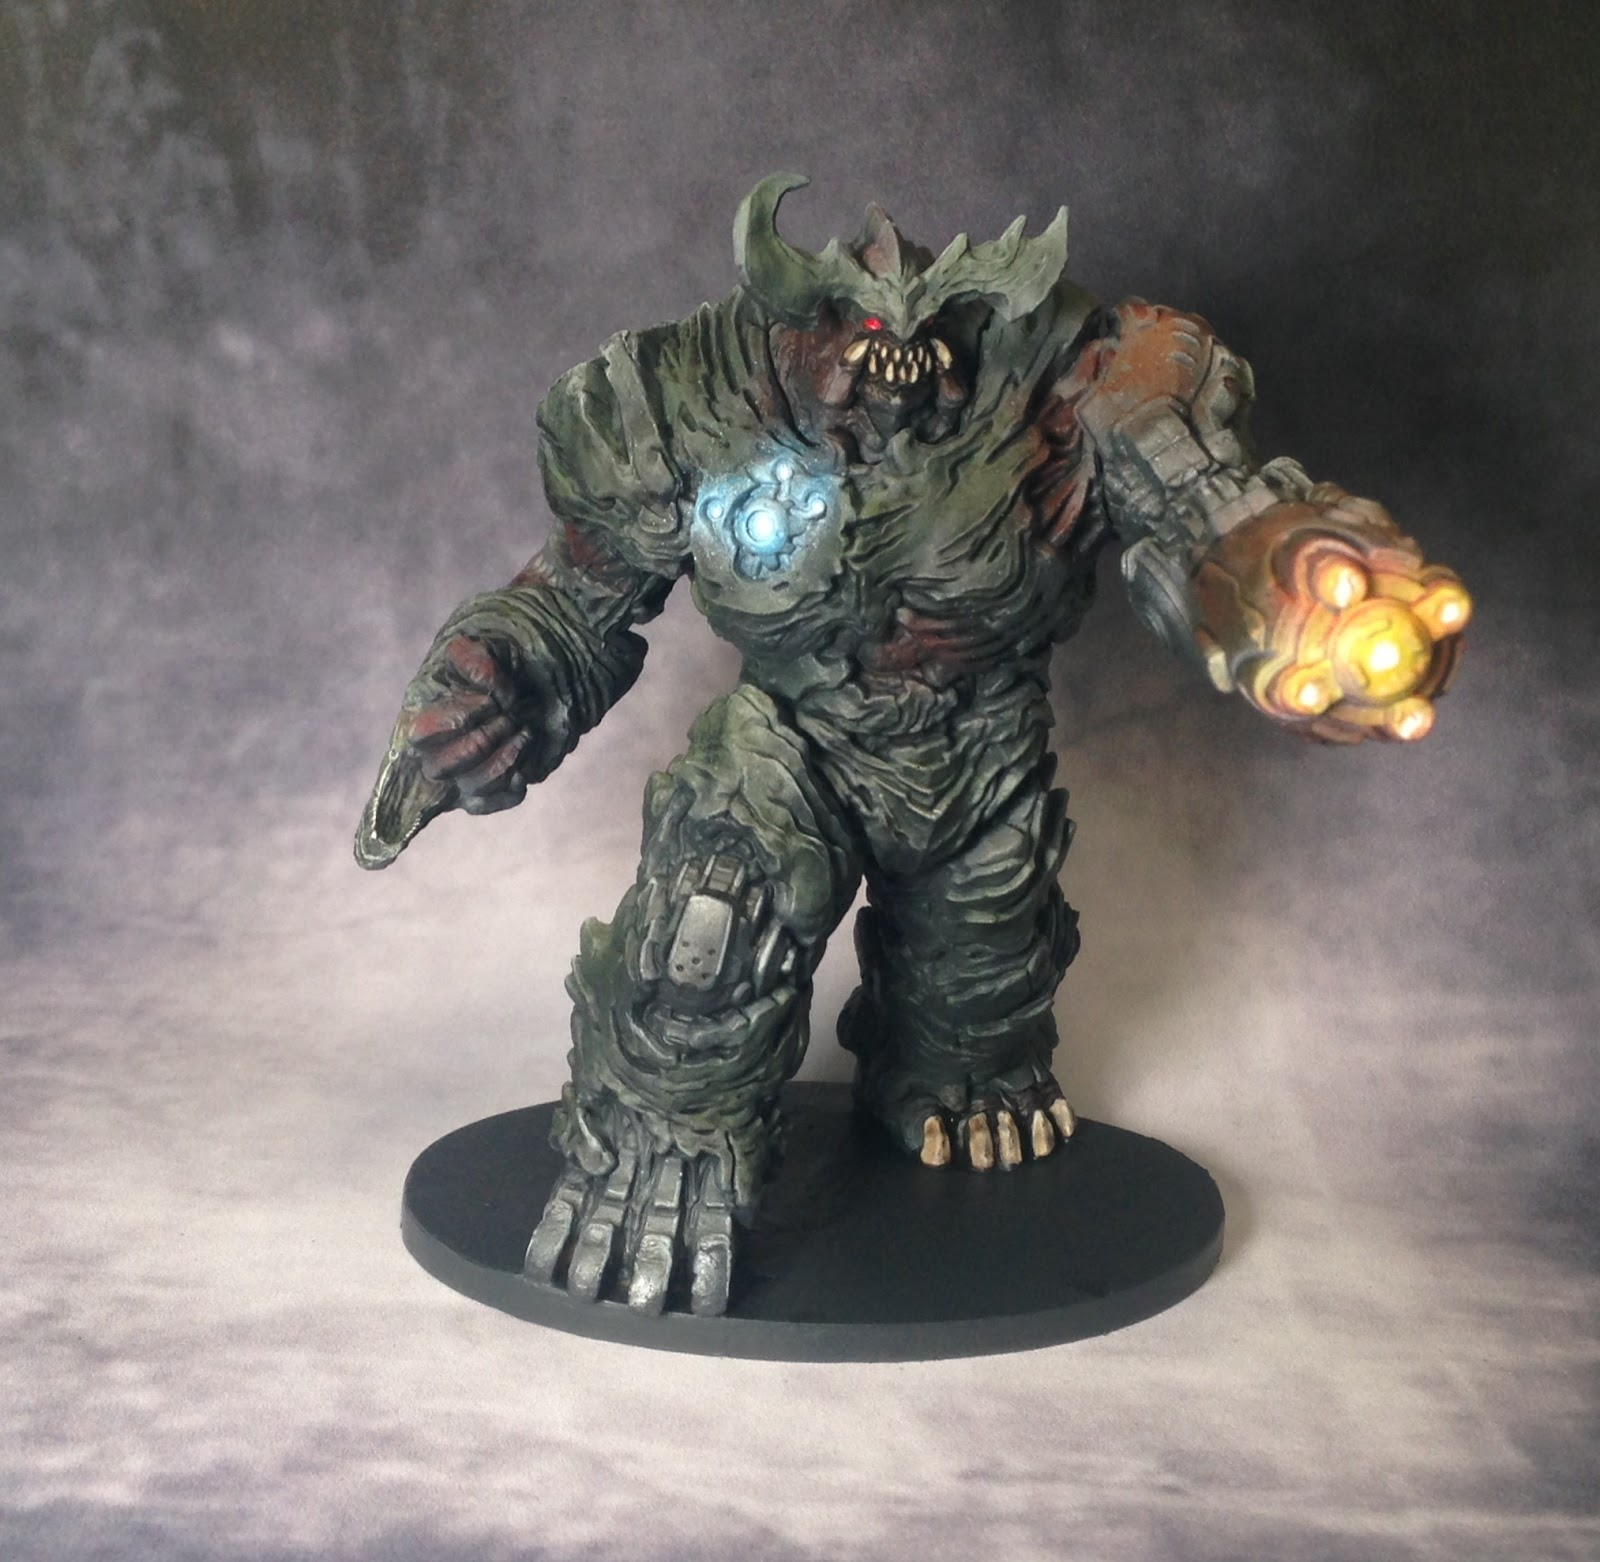 finmirage s stuff doom the boardgames painted the miniatures